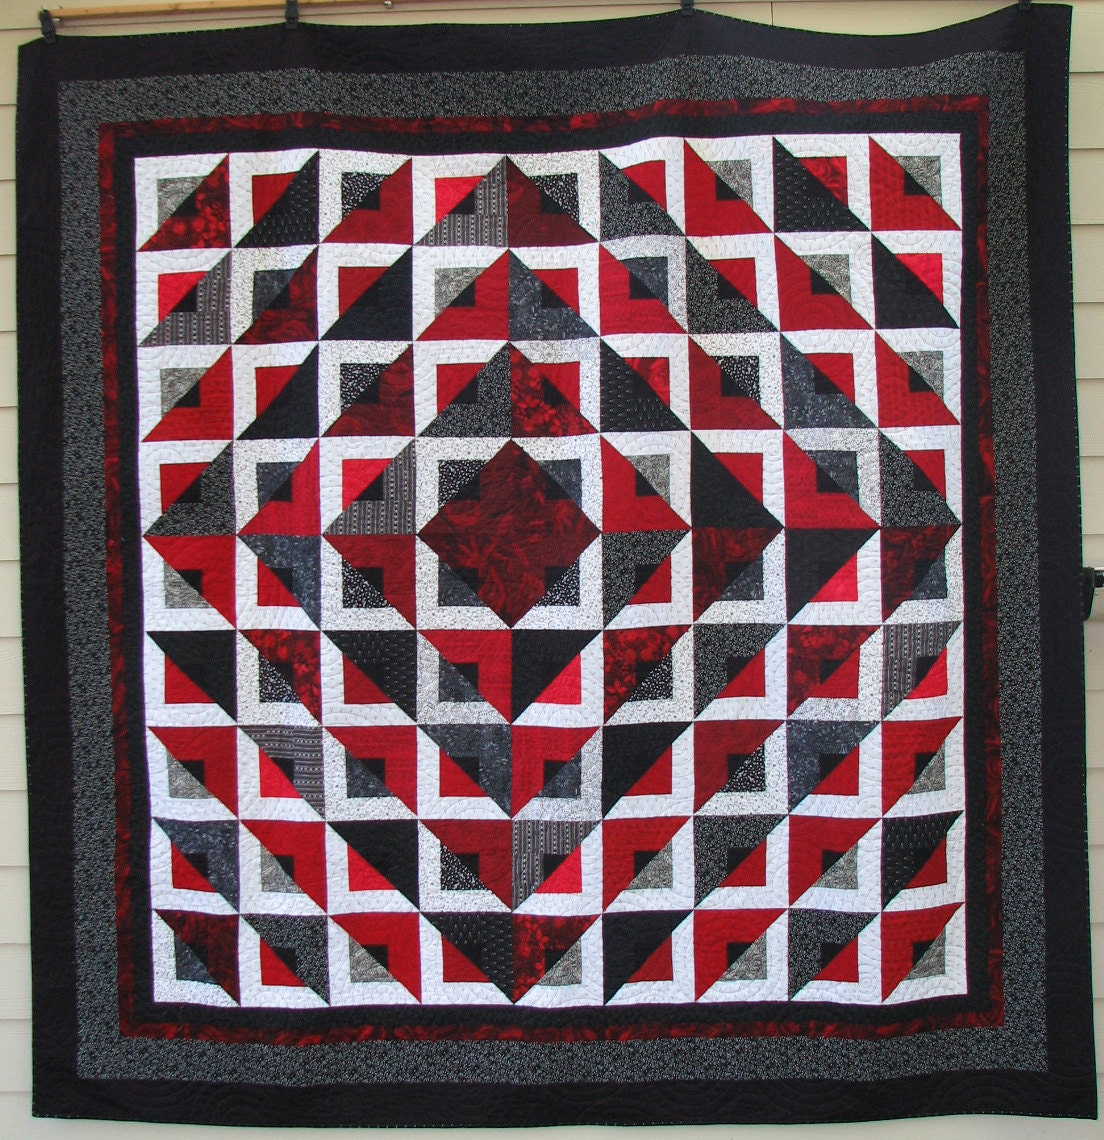 Geometric pattern quilt radiant quilt 98x98 for Red door design quilts